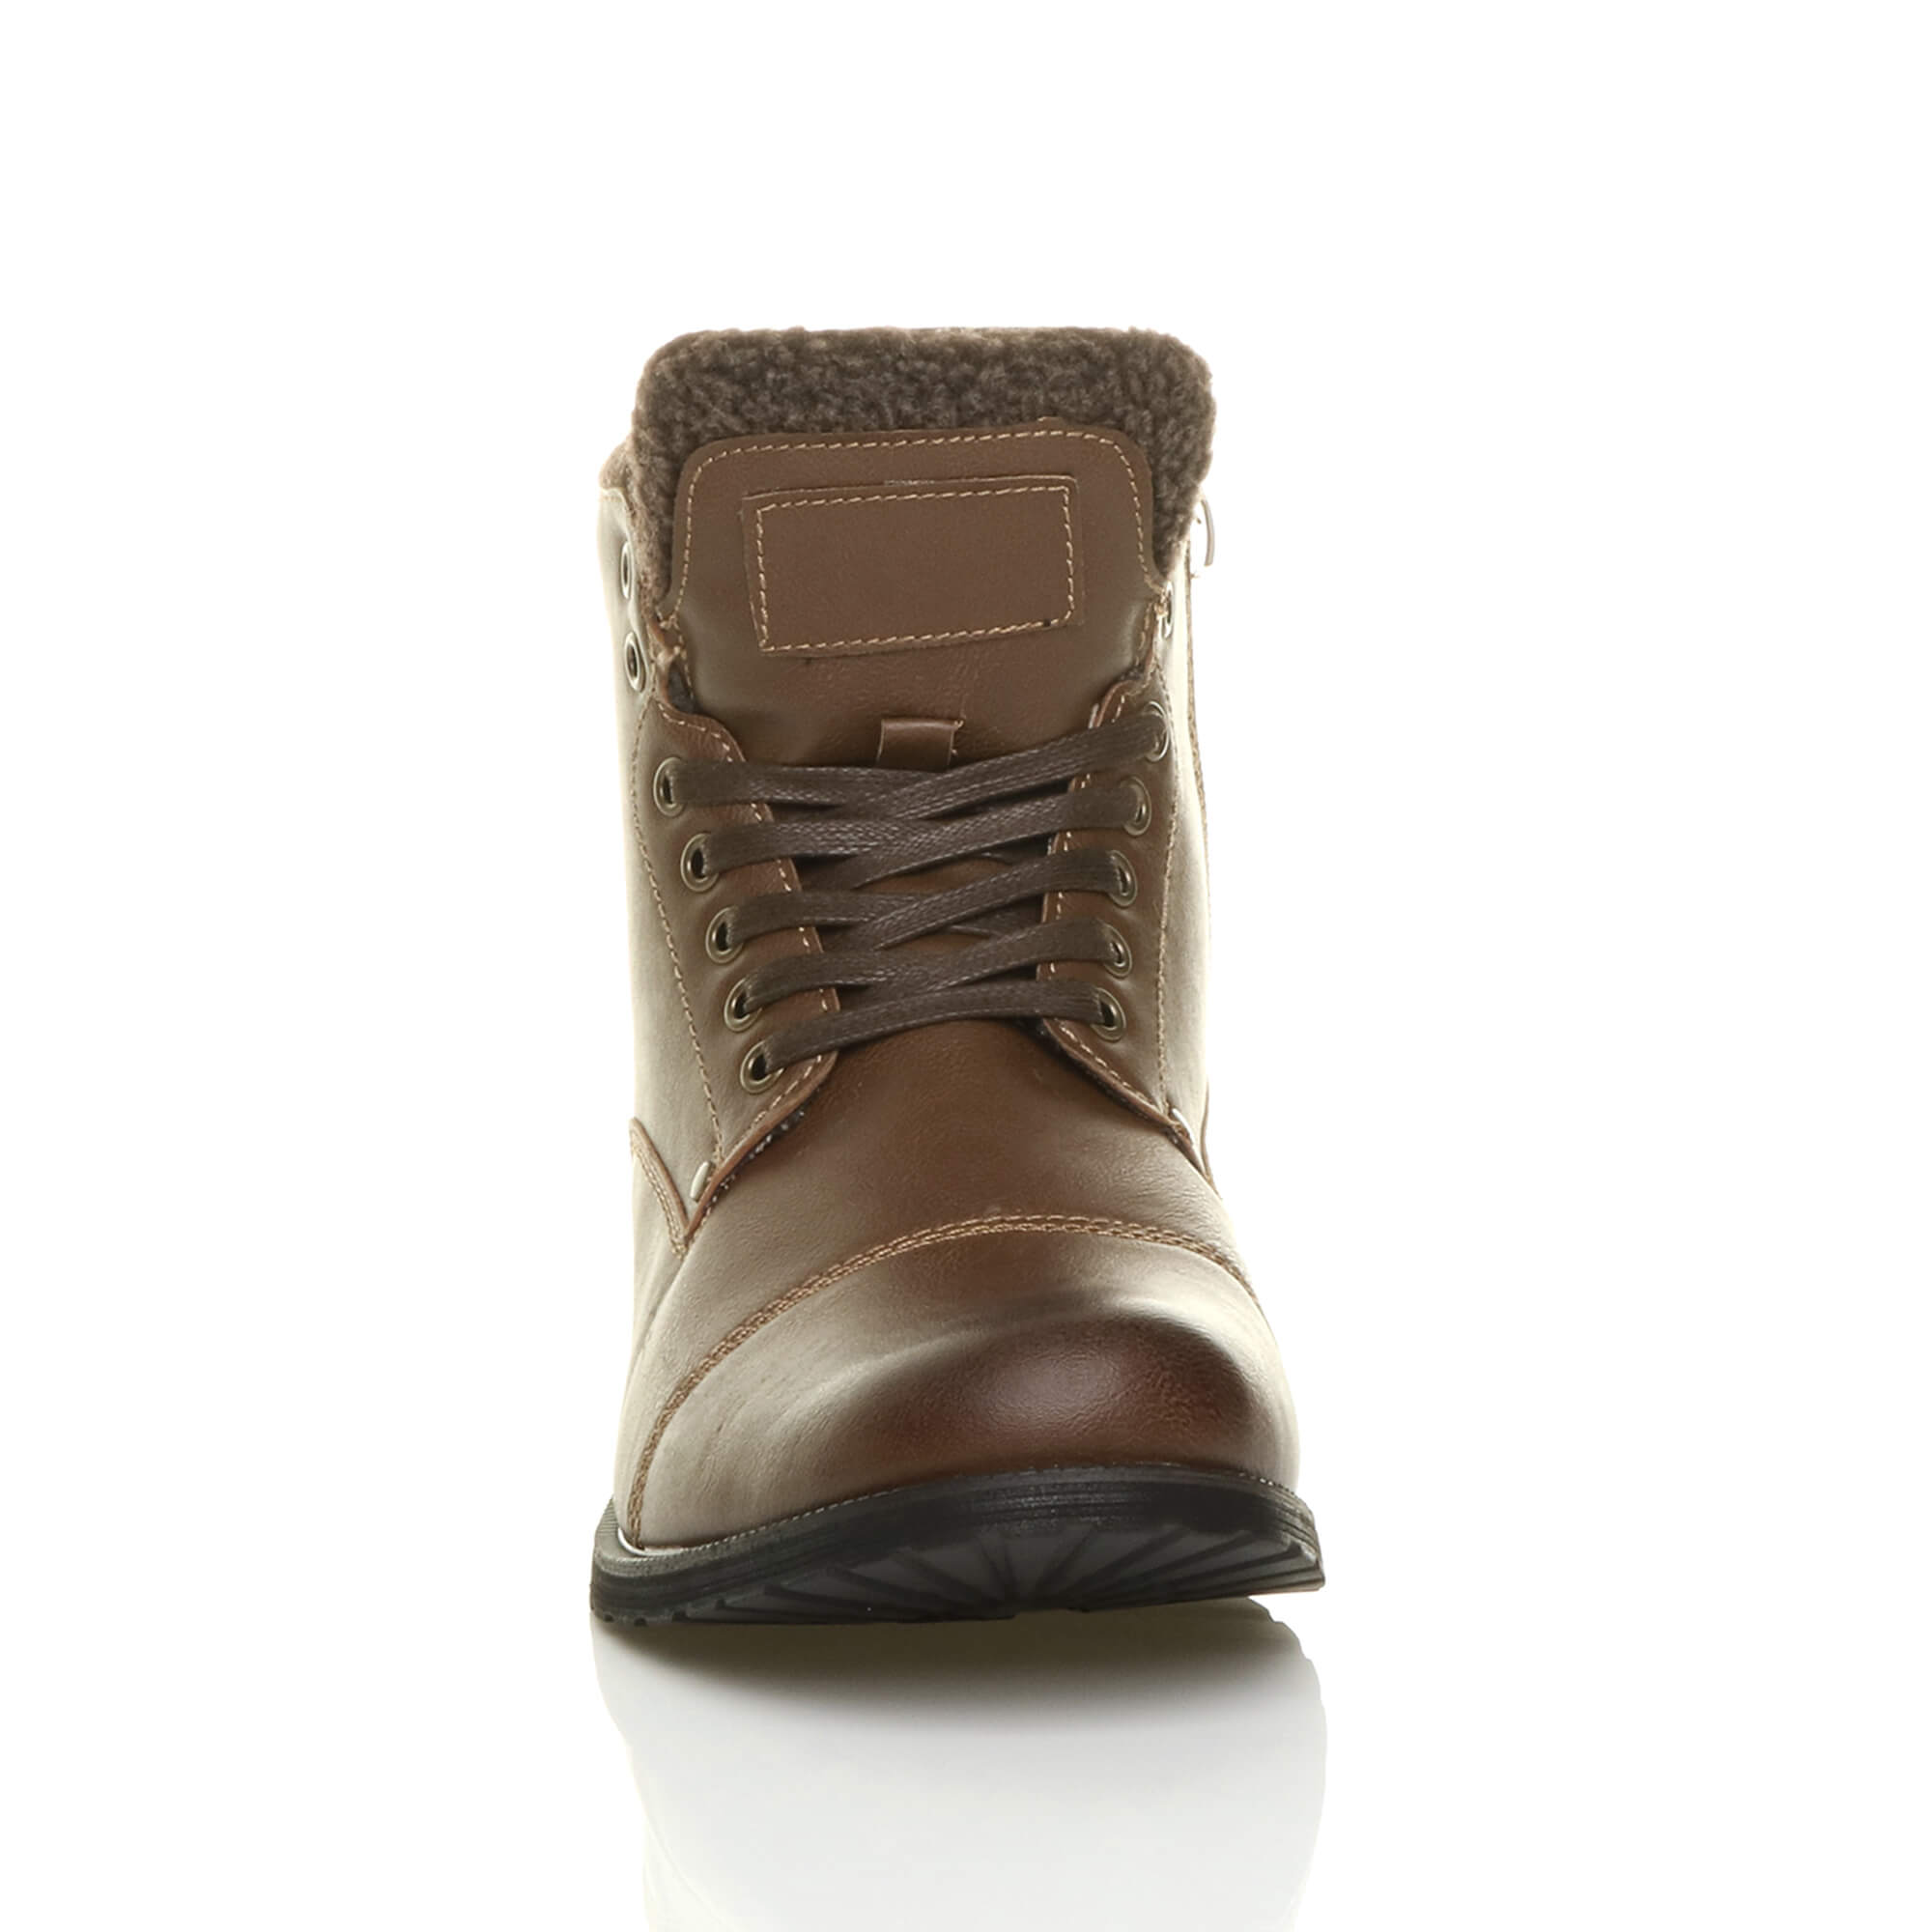 MENS-LACE-UP-ZIP-FUR-TRIM-SMART-WORK-WINTER-ARMY-MILITARY-BIKER-ANKLE-BOOTS-SIZE thumbnail 15